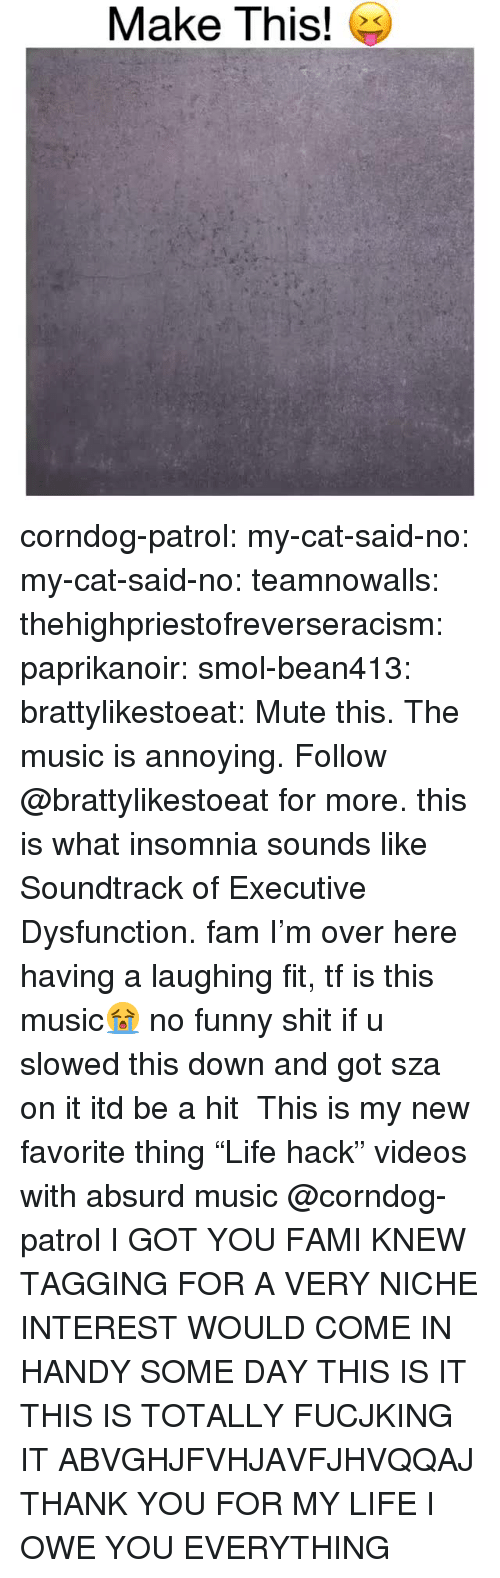 """niche: Make This! e corndog-patrol: my-cat-said-no:  my-cat-said-no:  teamnowalls:  thehighpriestofreverseracism:  paprikanoir:  smol-bean413:   brattylikestoeat:  Mute this. The music is annoying. Follow @brattylikestoeat for more.  this is what insomnia sounds like   Soundtrack of Executive Dysfunction.  fam I'm over here having a laughing fit, tf is this music😭  no funny shit if u slowed this down and got sza on it itd be a hit   This is my new favorite thing """"Life hack"""" videos with absurd music   @corndog-patrol I GOT YOU FAMI KNEW TAGGING FOR A VERY NICHE INTEREST WOULD COME IN HANDY SOME DAY  THIS IS IT THIS IS TOTALLY FUCJKING IT ABVGHJFVHJAVFJHVQQAJ THANK YOU FOR MY LIFE I OWE YOU EVERYTHING"""